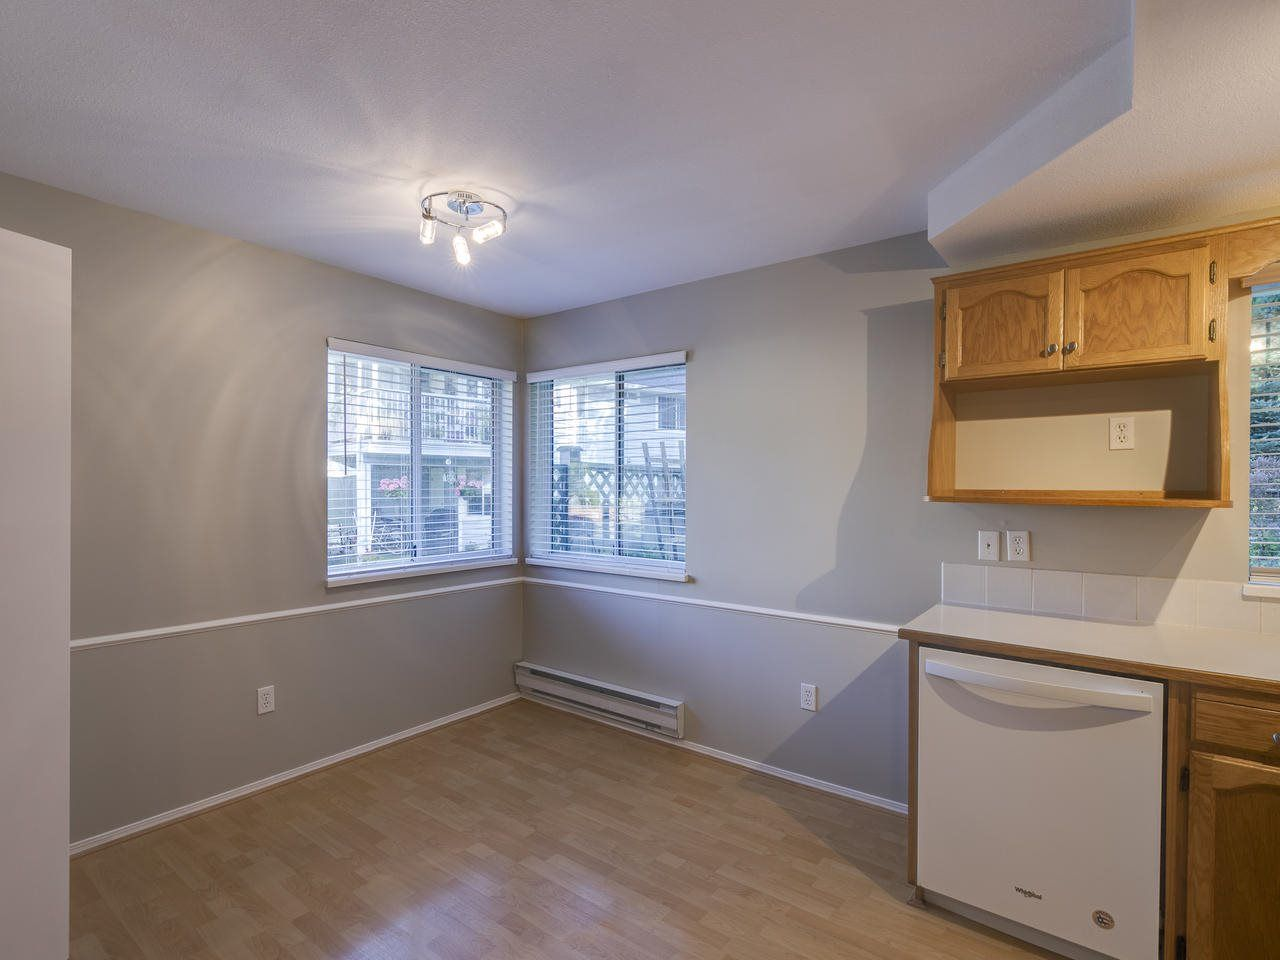 """Photo 22: Photos: 127 22555 116 Avenue in Maple Ridge: East Central Townhouse for sale in """"HILLSIDE"""" : MLS®# R2493046"""